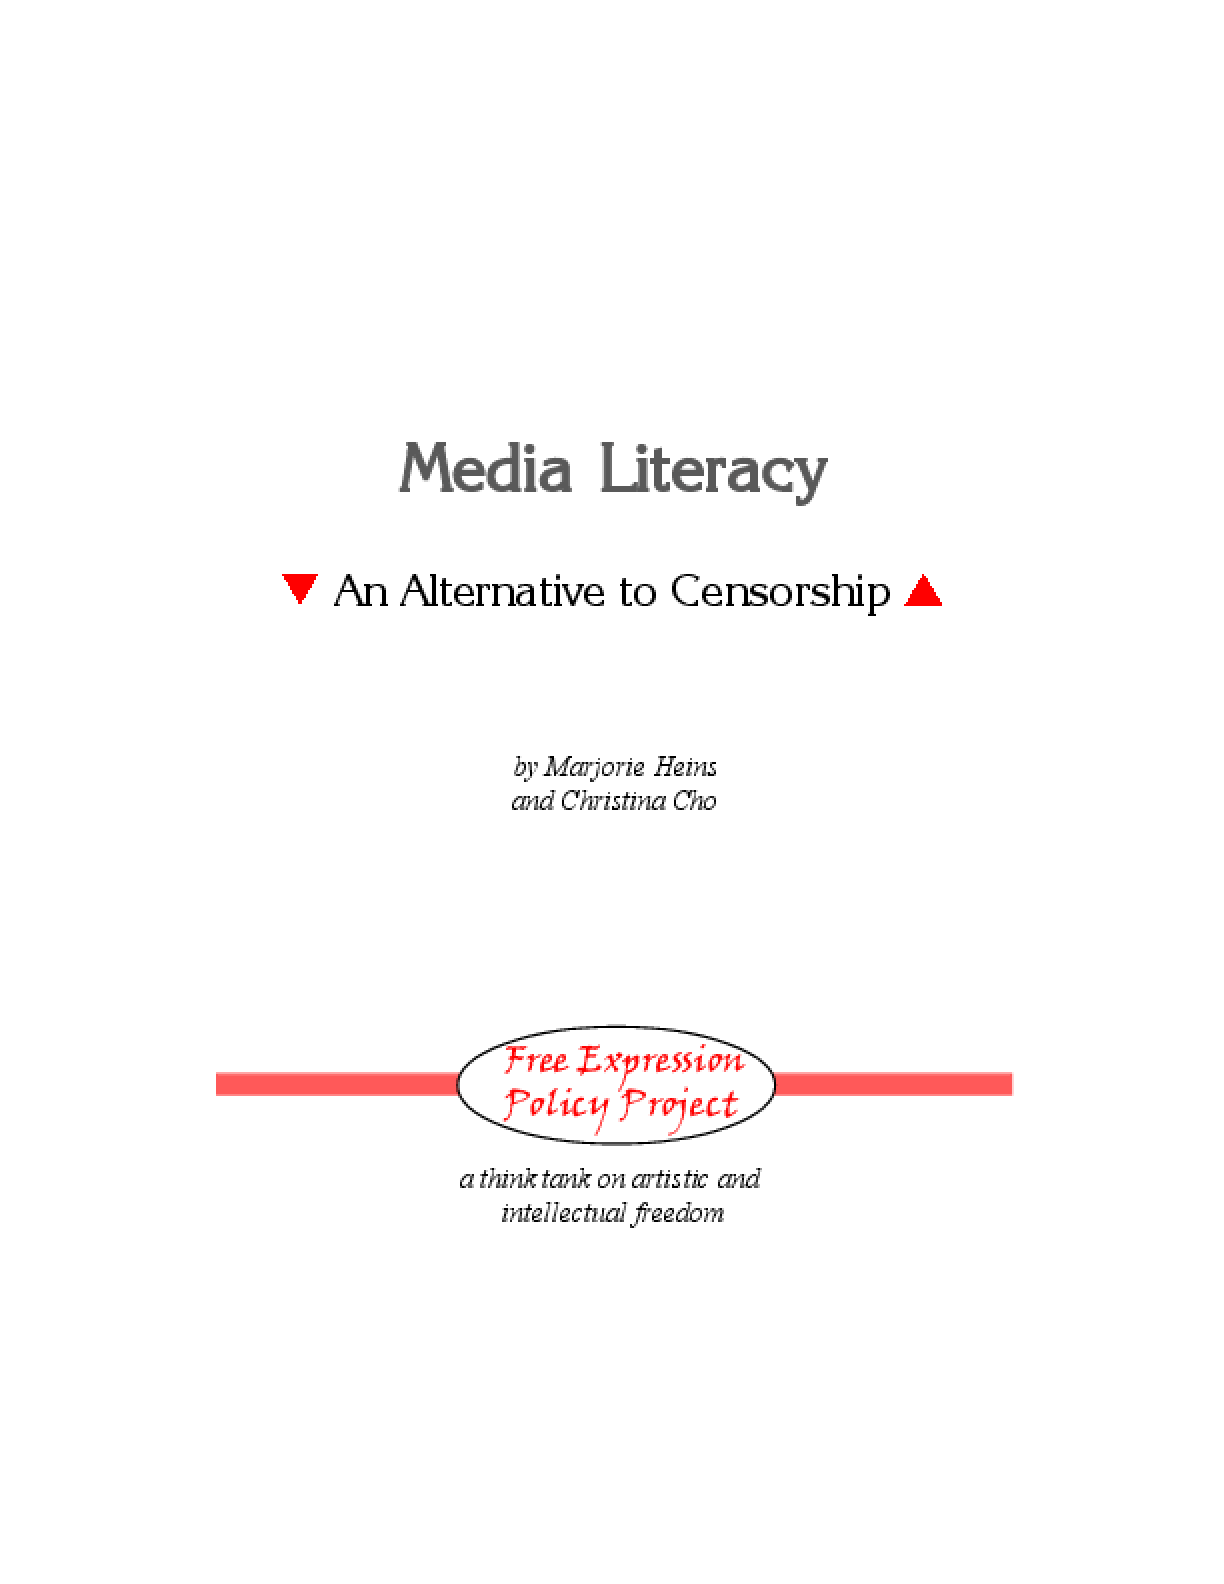 Media Literacy: An Alternative to Censorship